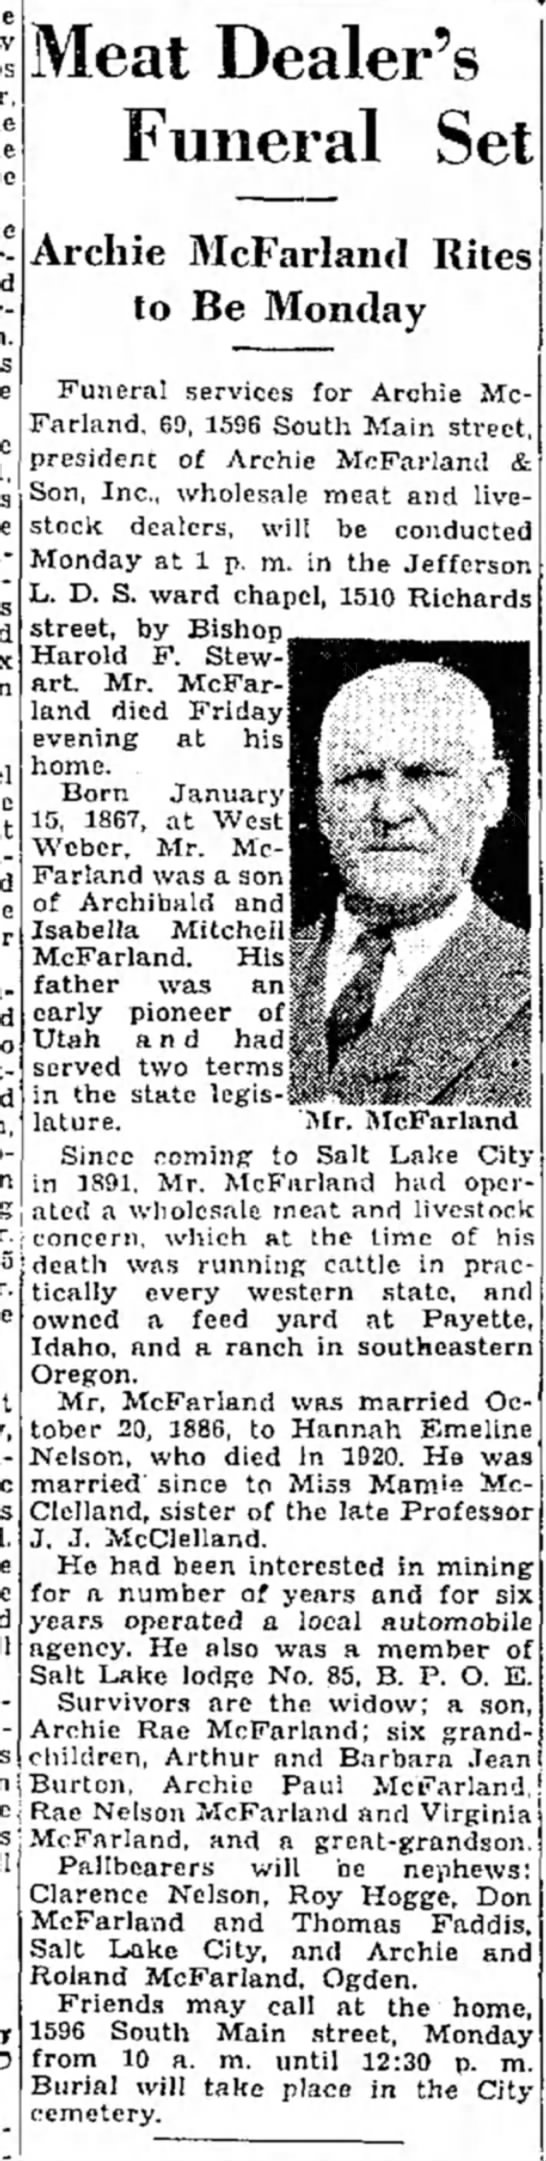 Obituary of Archie McFarland - Meat Dealer's Funeral Set Archie McFarland...